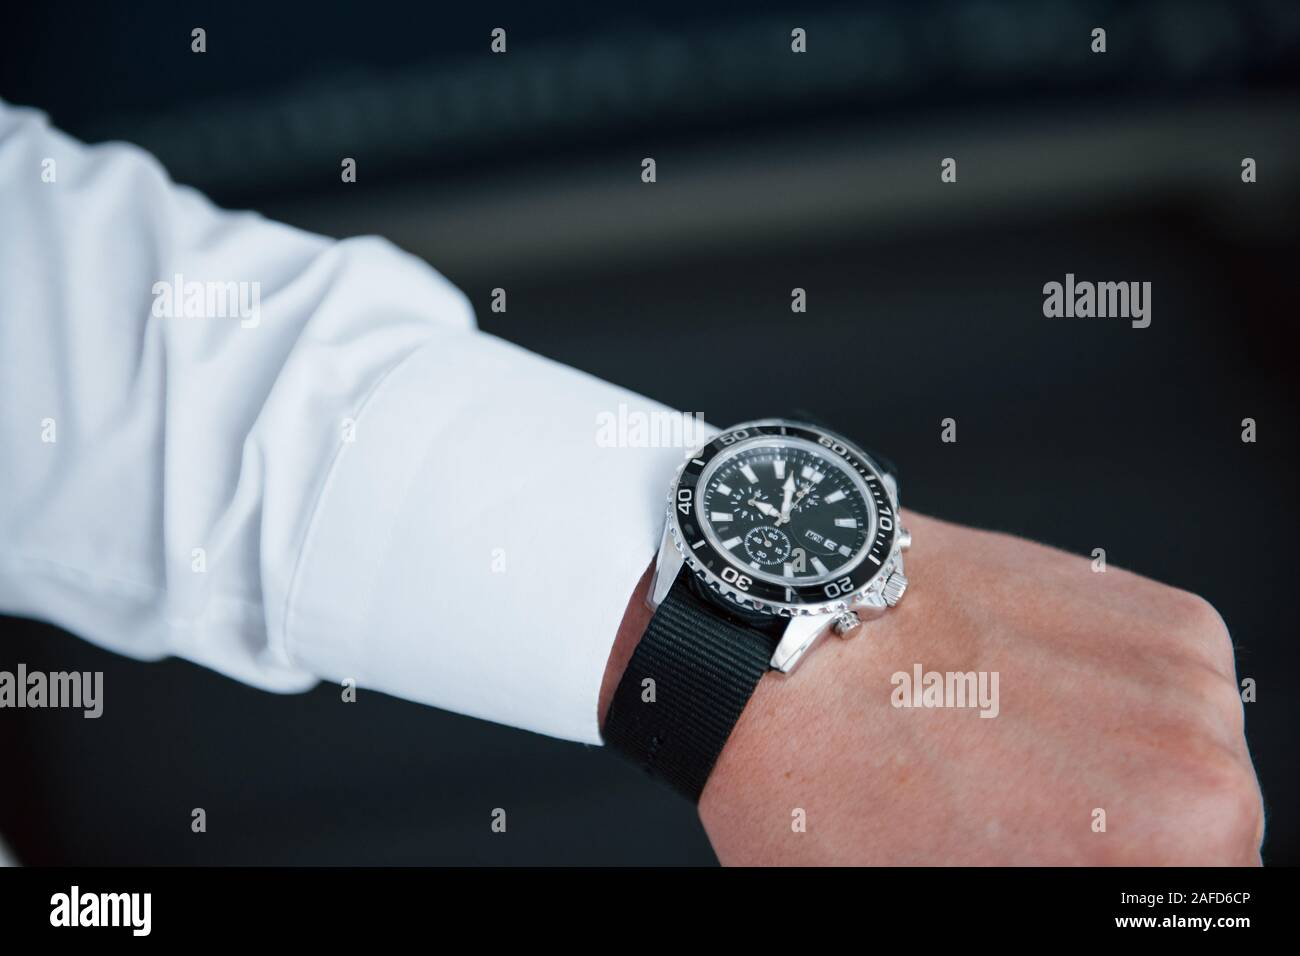 Close up photo of man's hand in suit with luxury watch Stock Photo